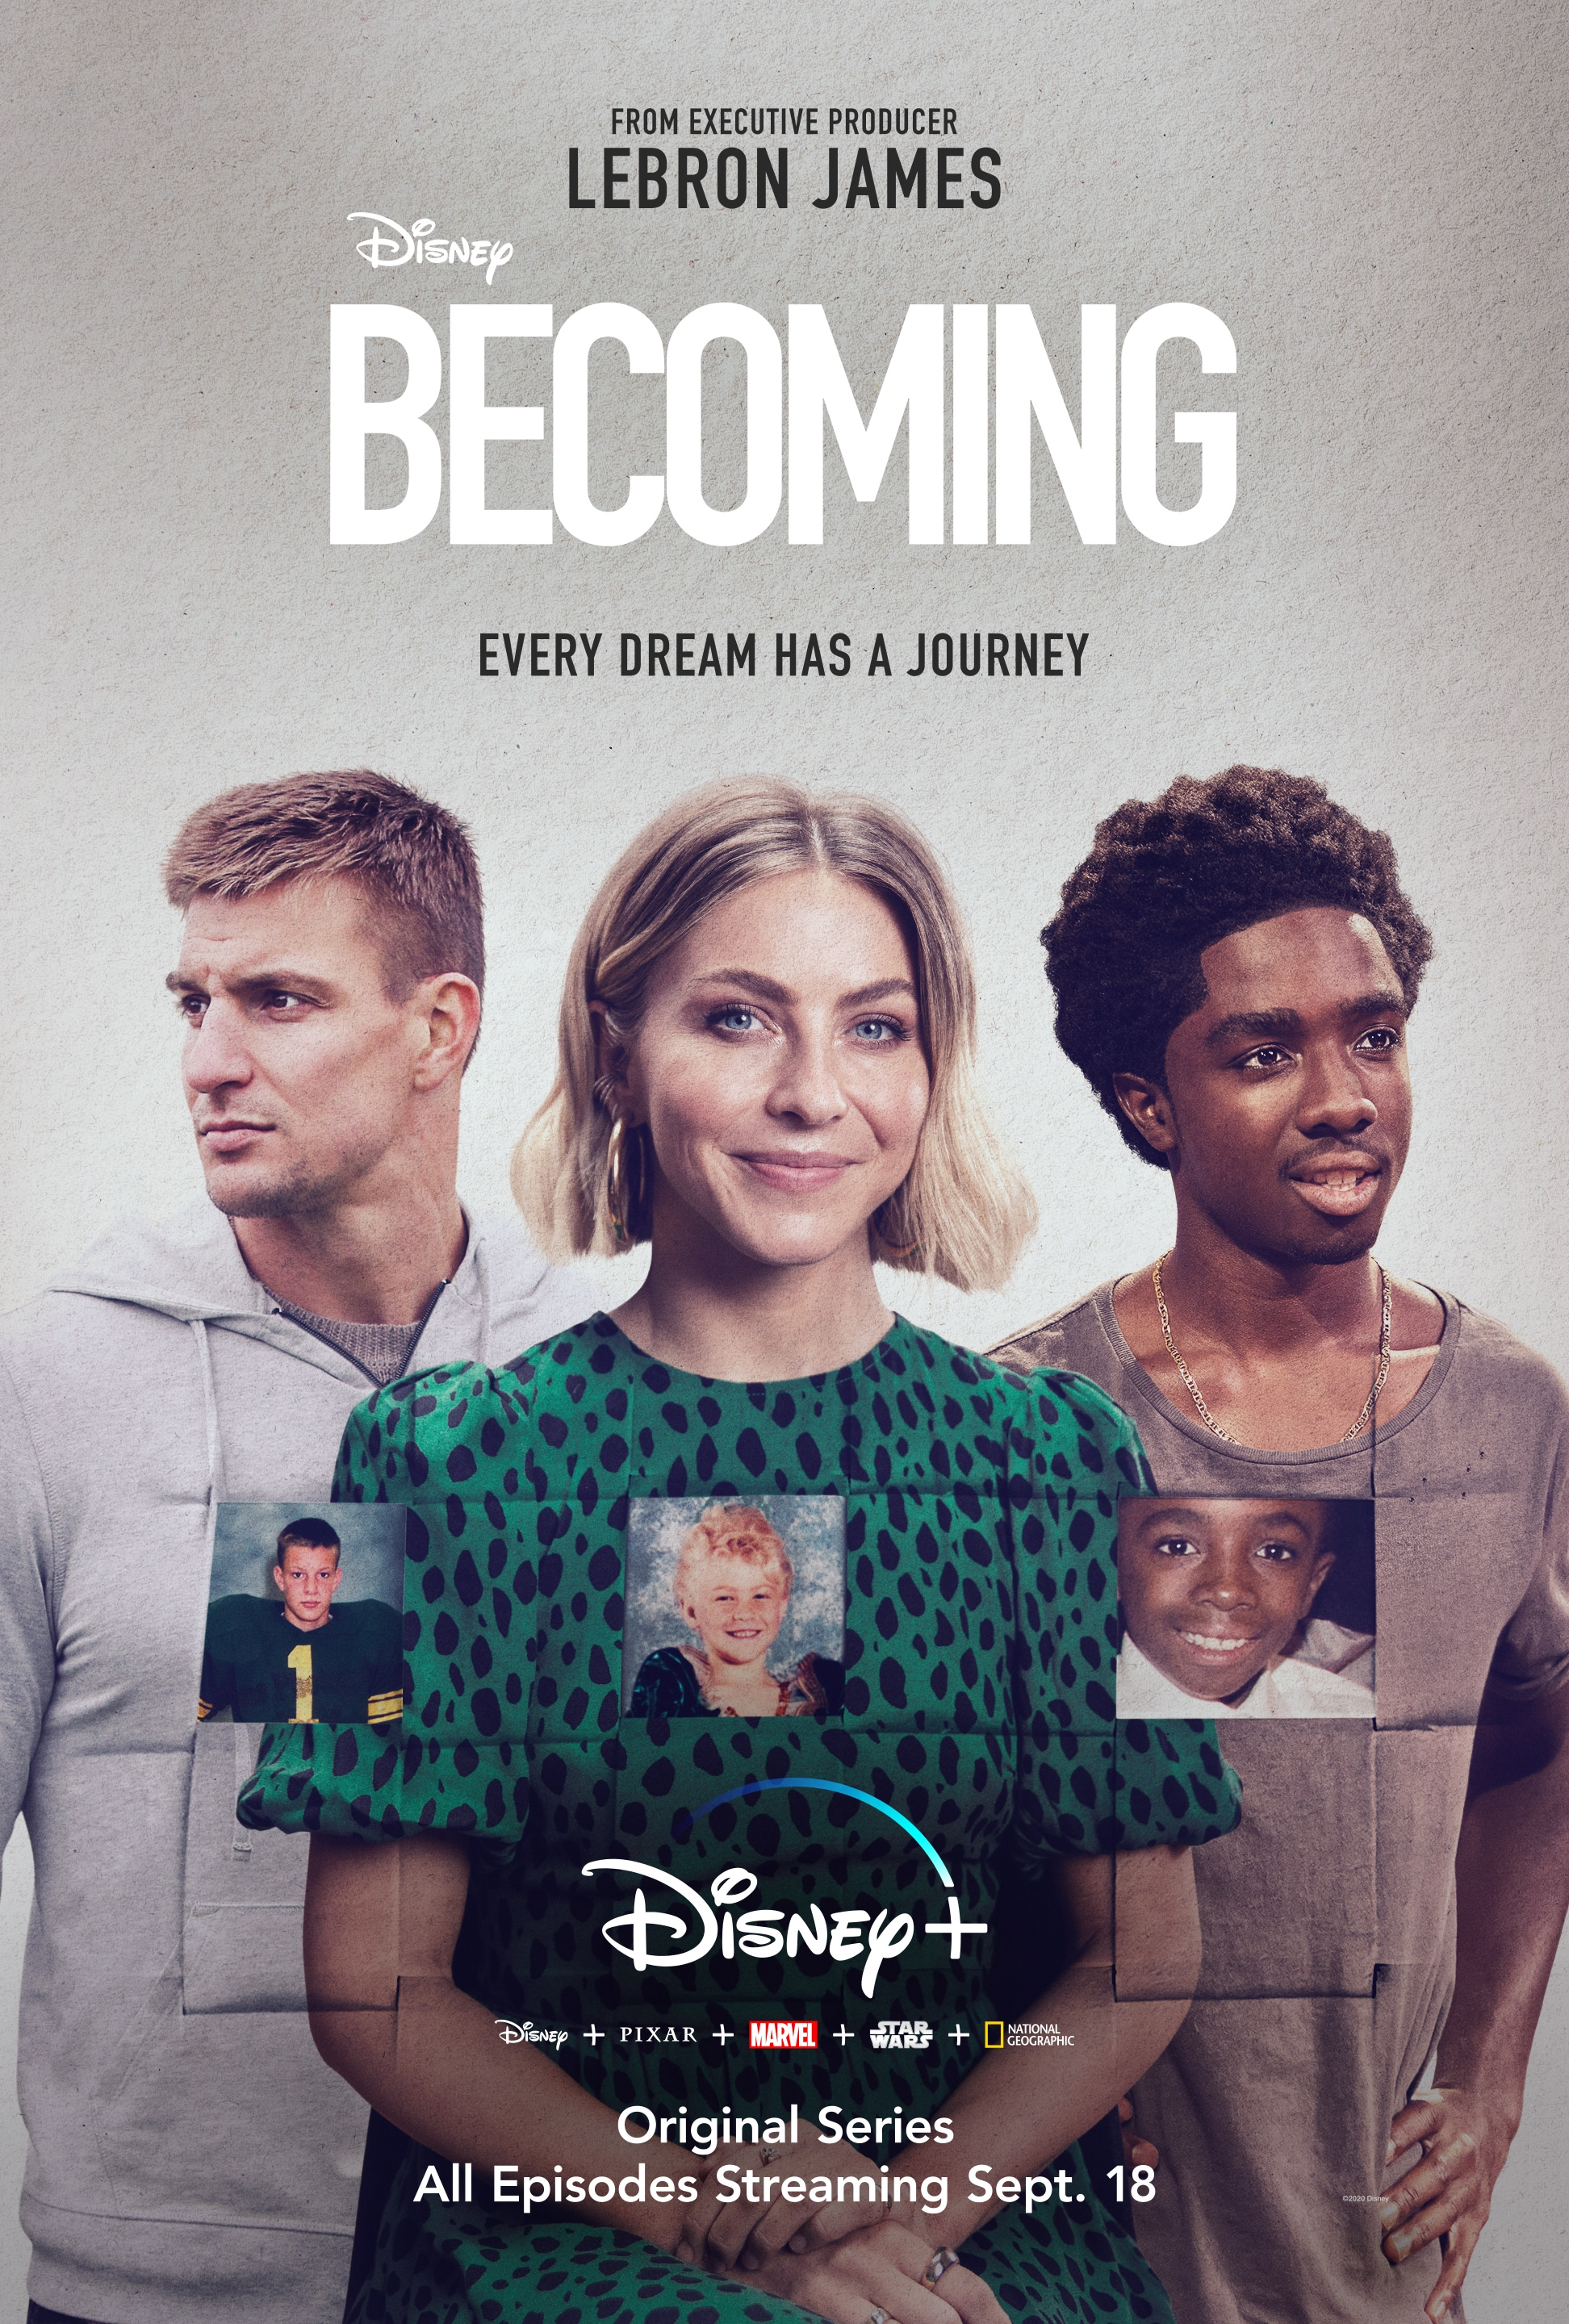 Becoming - a Disney+ Original Series poster